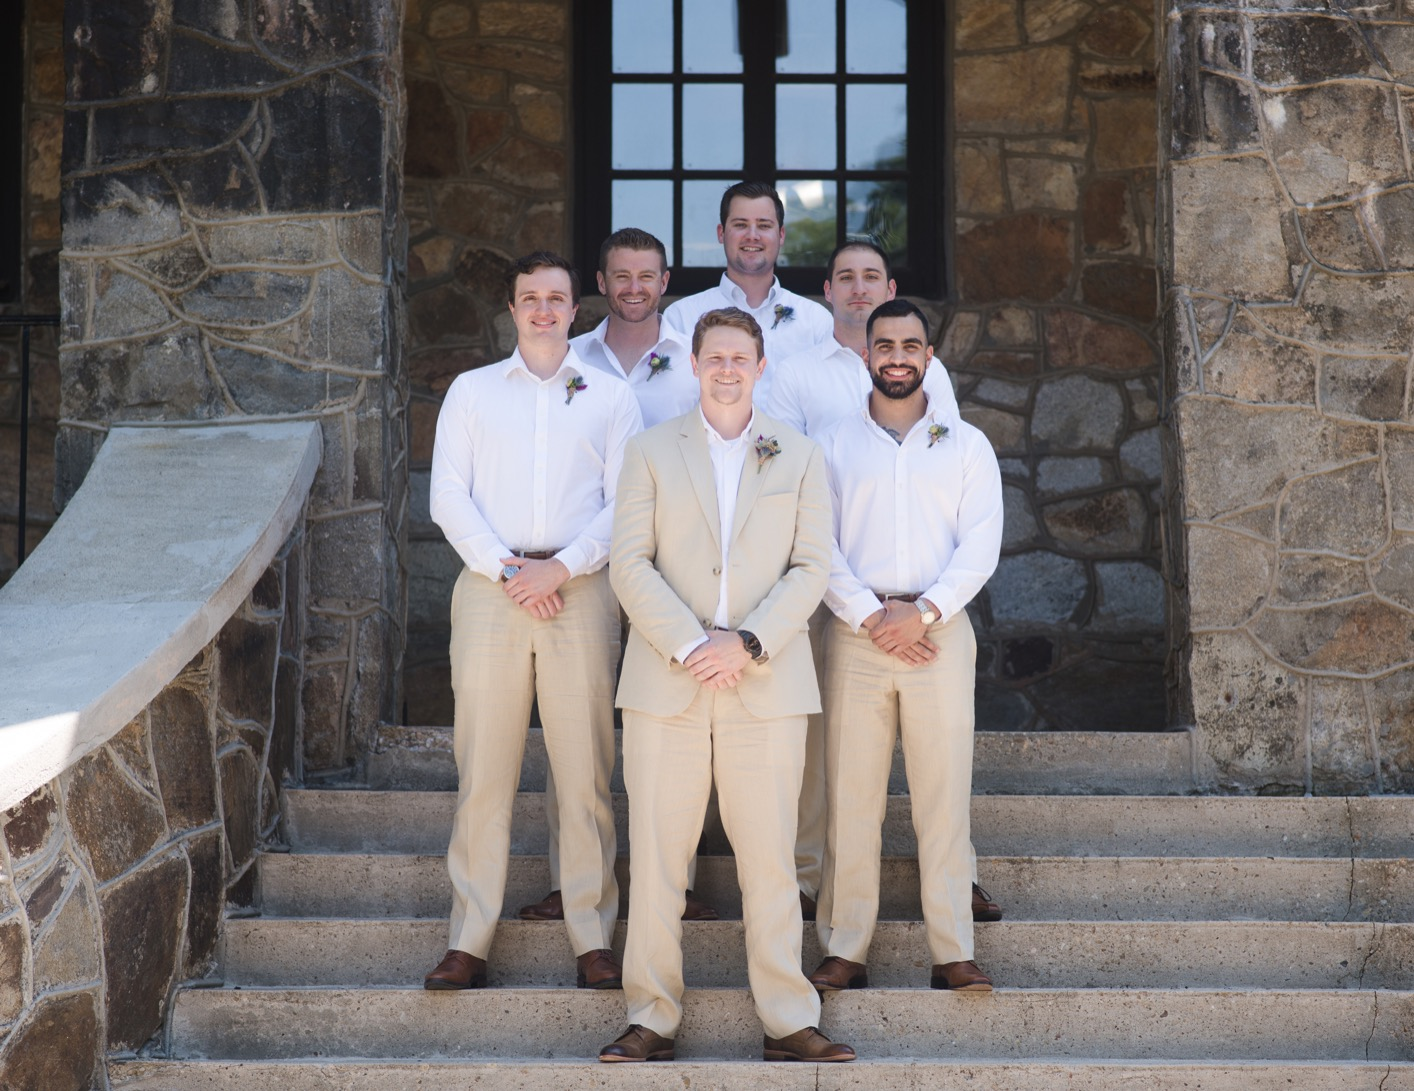 015_Weddings_Groom_Wedding_Photography_Photographers_Atlanta_Georgia_Groomsmen.jpg